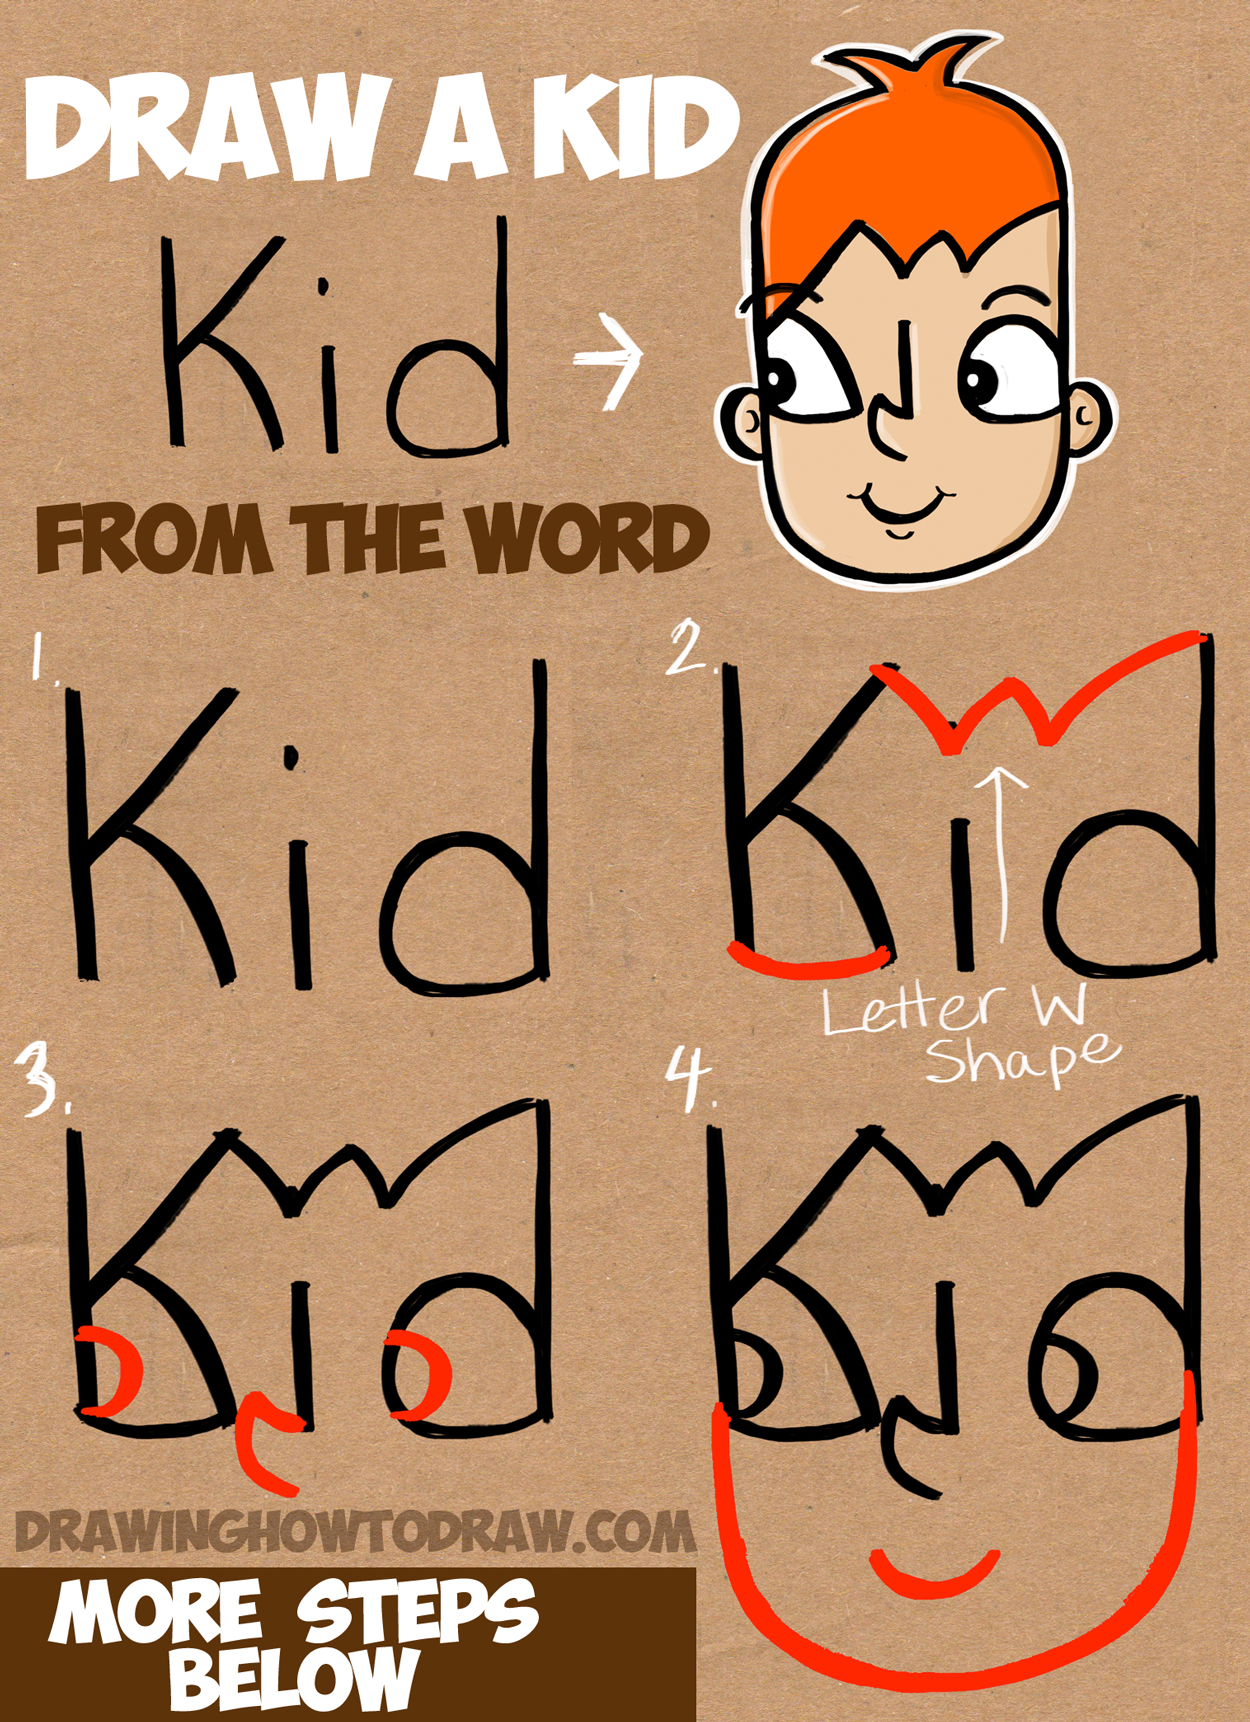 learn how to draw a cartoon kid from the word kid simple step by step - Easy Drawing Pictures For Kids